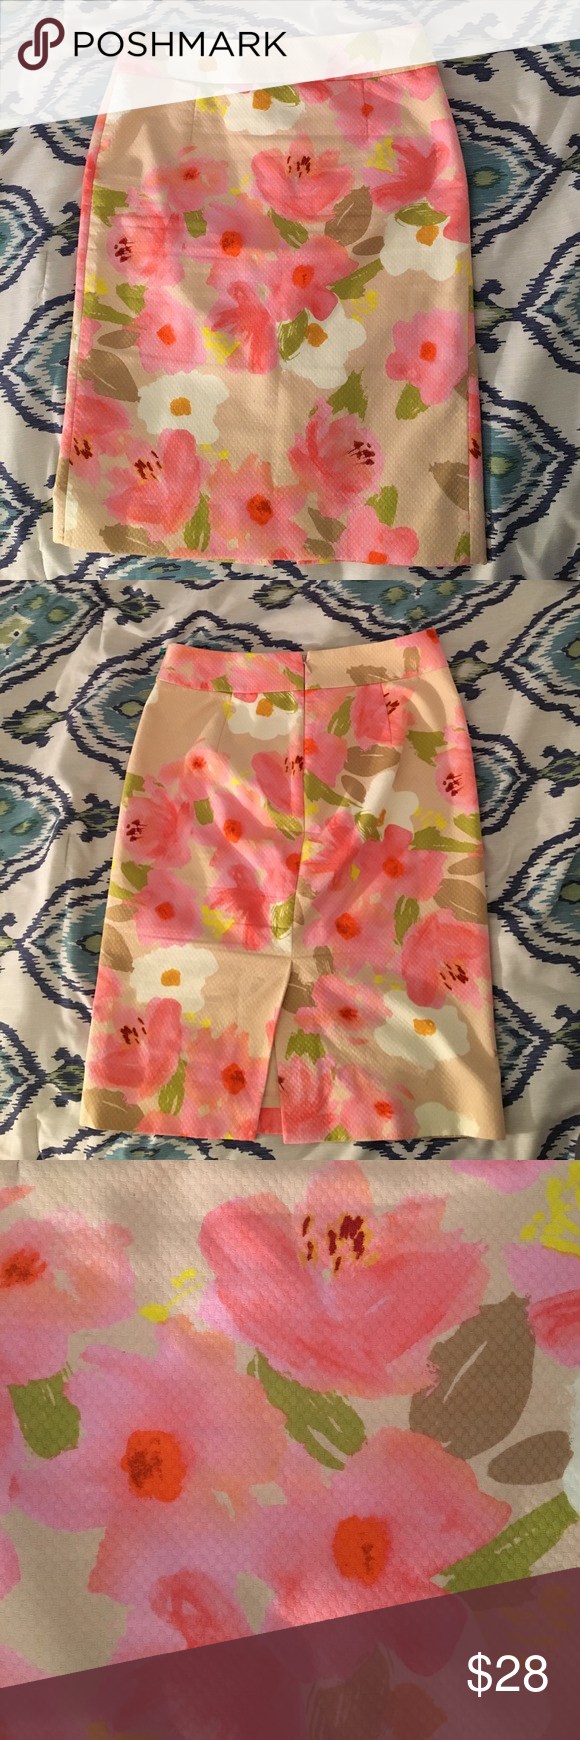 """J. Crew Watercolor Floral Pencil Skirt Like new J. Crew Watercolor Floral pencil skirt, size 2. 100% cotton. Textured cotton pique fabric with bright shades of pink, nude, chartreuse, white, and coral. Back zip and bottom vent. knee length. Laying flat: waist - 14.5"""", length - 23 1/4"""" super cute! No longer fits last photo for reference J. Crew Skirts Pencil"""